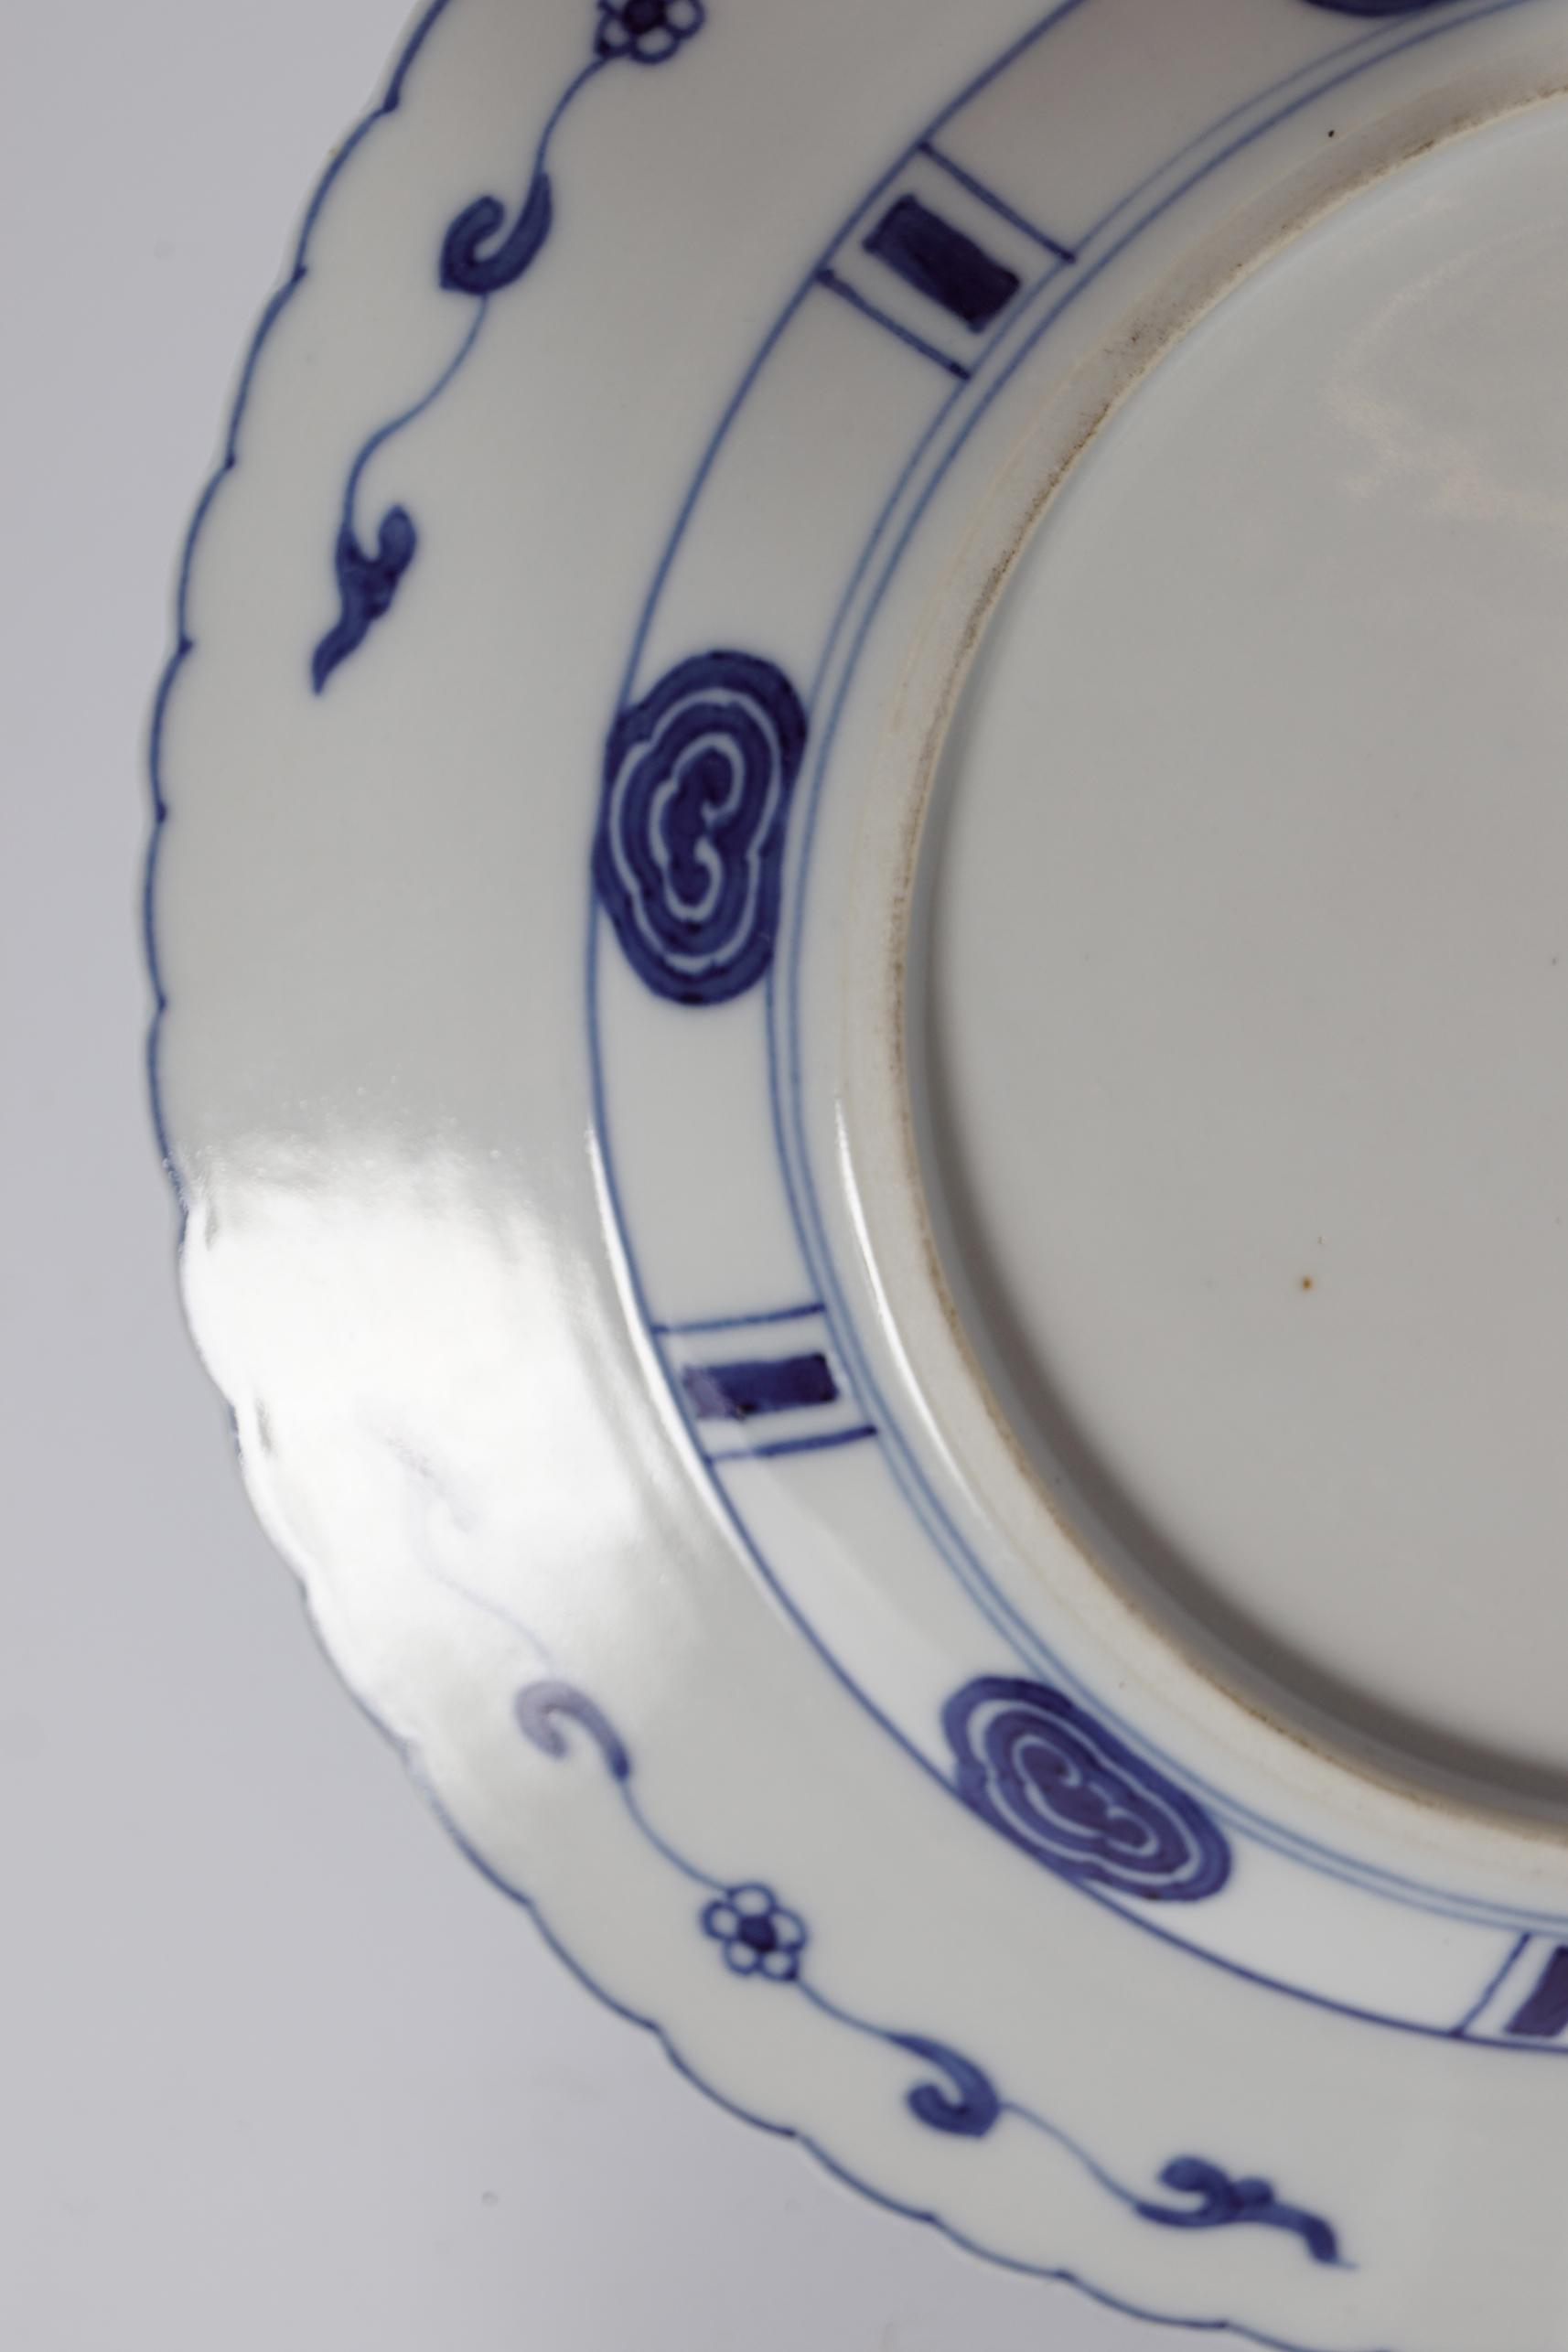 CHINESE SCALLOP RIMMED BLUE AND WHTIE PLATE - Image 3 of 4